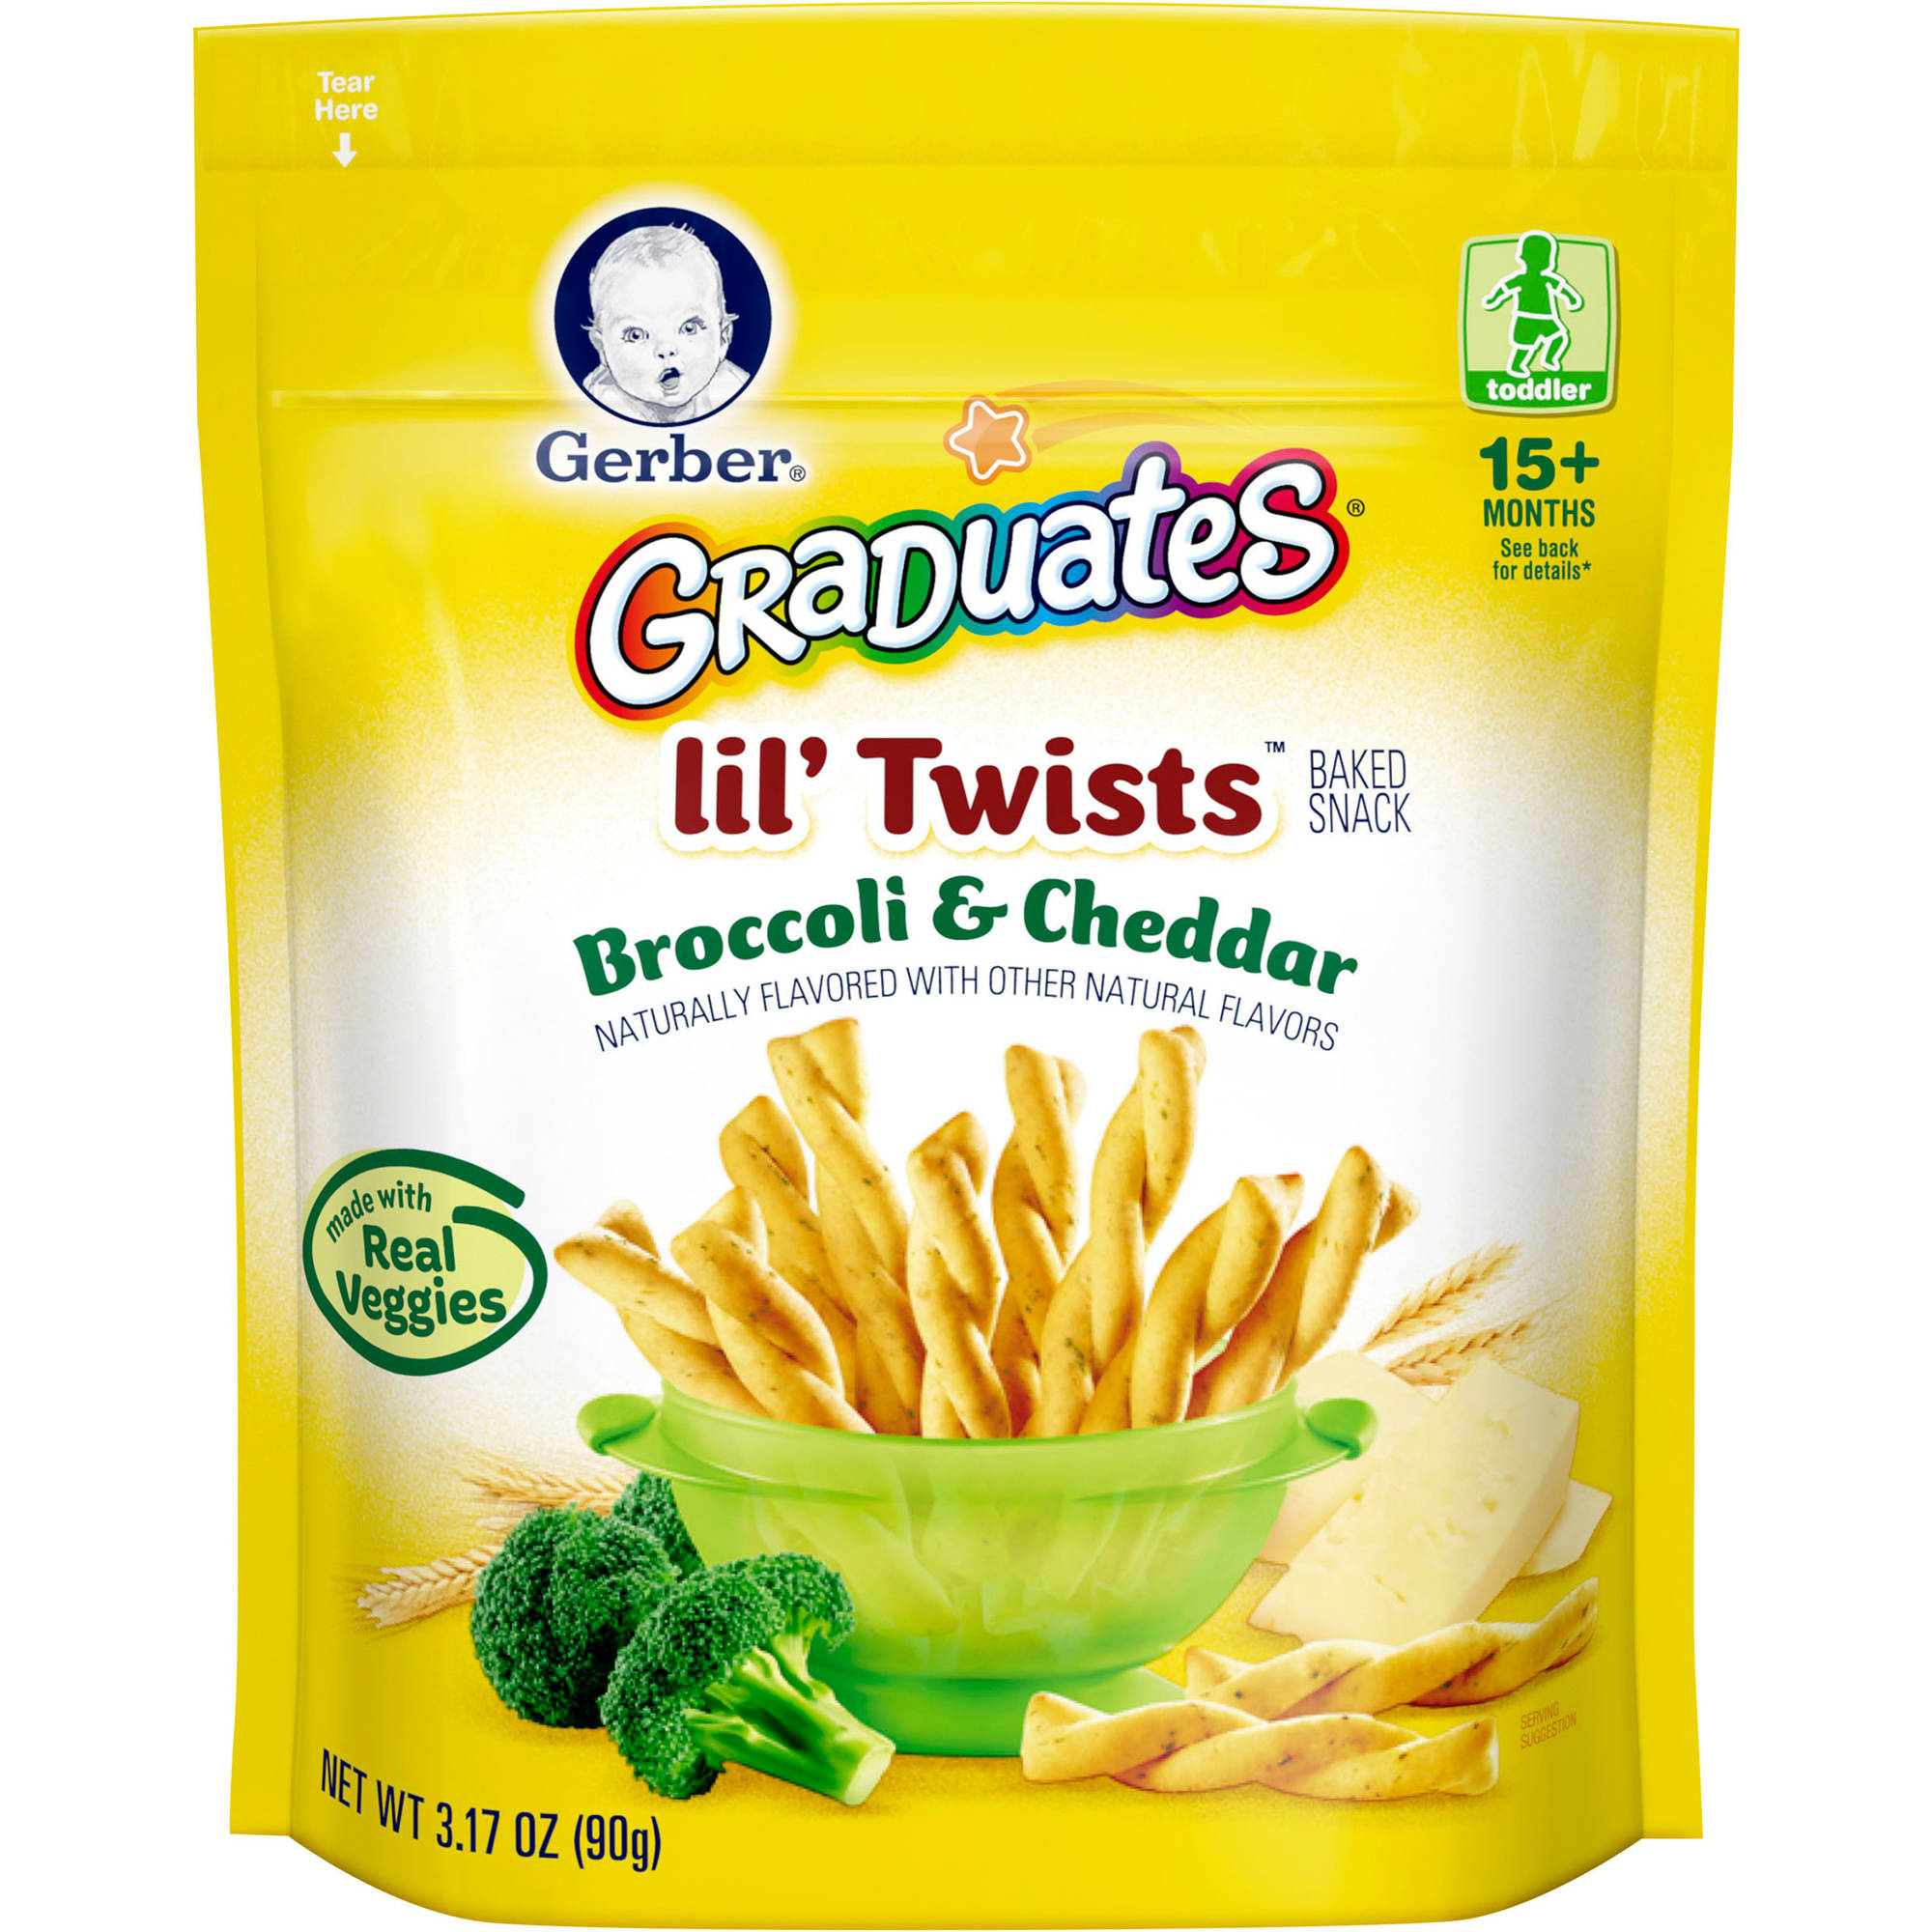 Gerber Graduates Lil' Twists Baked Snack Broccoli & Cheddar, Naturally Flavored with Other Natural Flavors, 3.17 Ounce, 1 Count